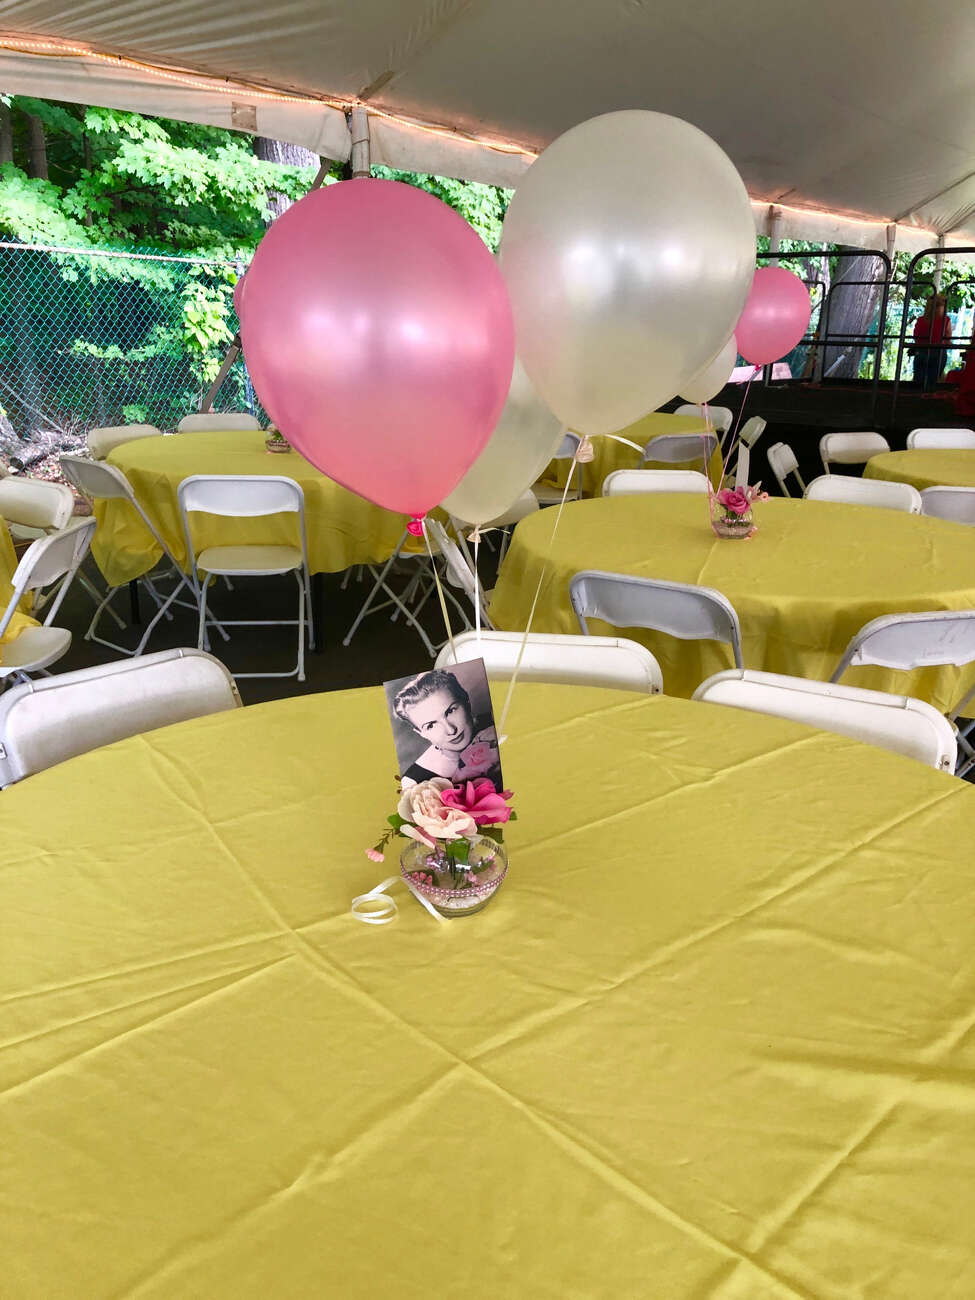 Balloons and photos to honor the late Marylou Whitney adorned the tent on the first Sunday night dinner this year at the backstretch.